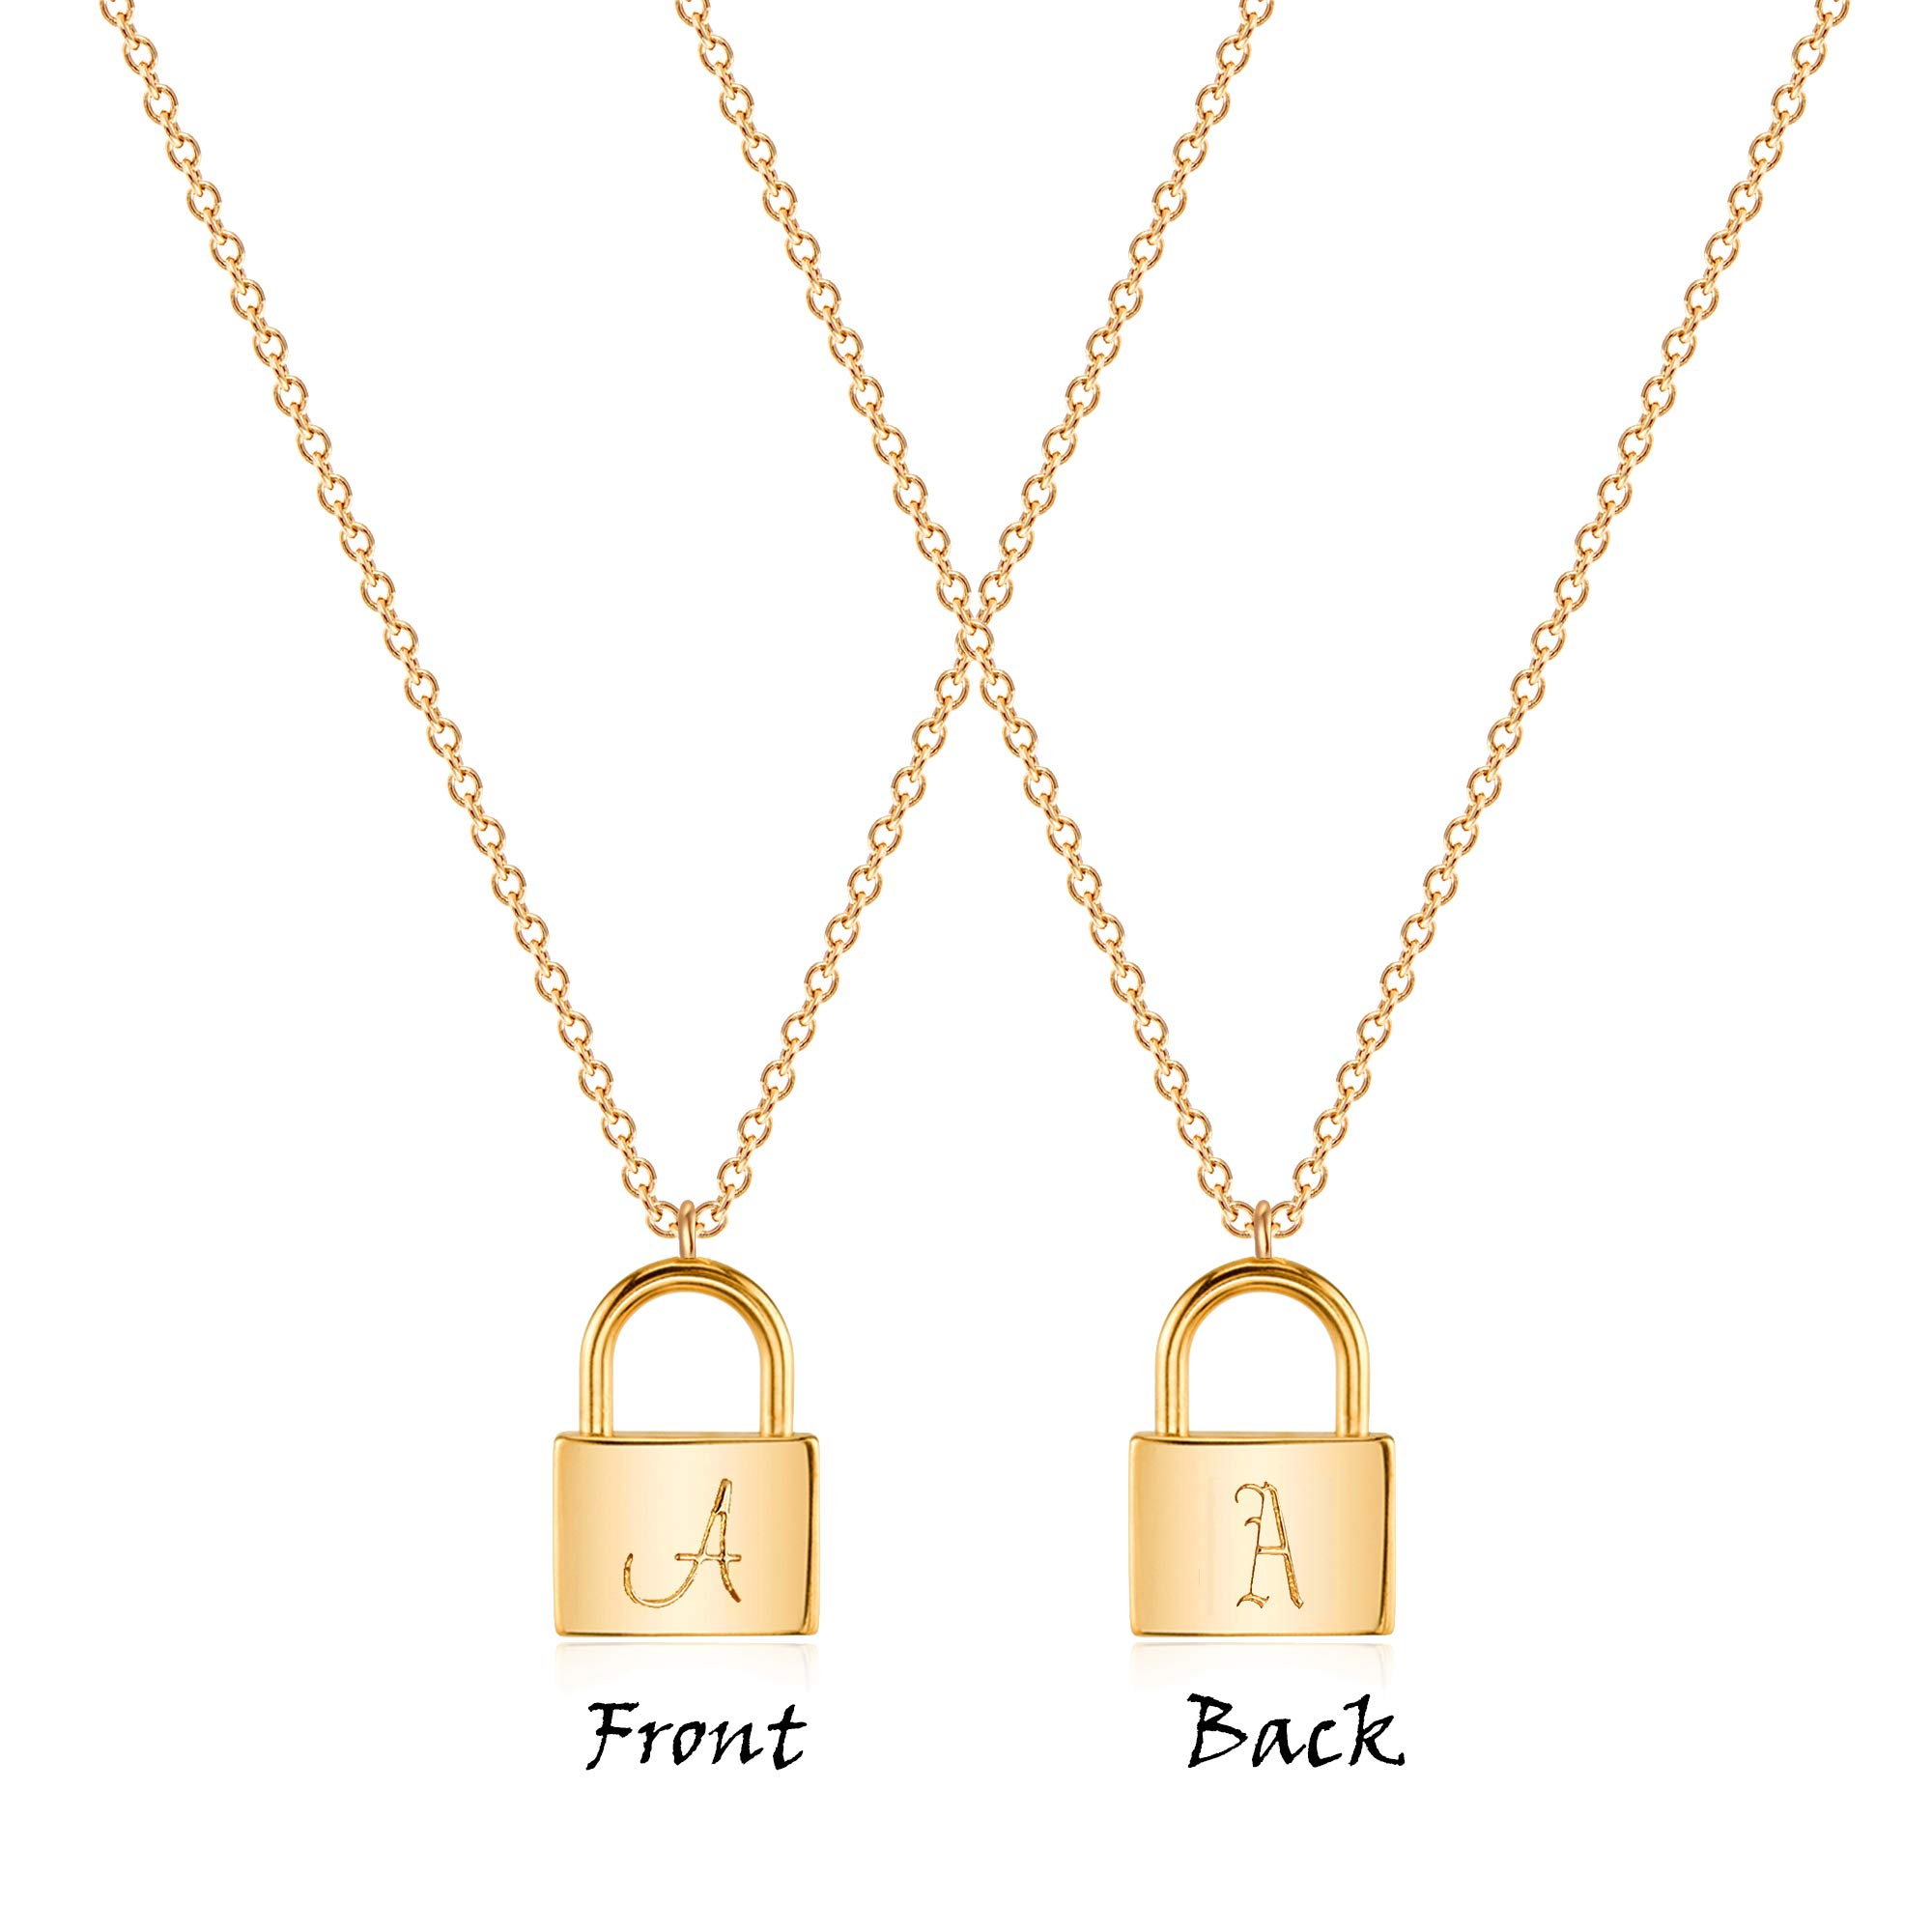 VACRONA Dainty Gold Lock Initial Necklace 18K Gold Plated Initial Padlock Layered Lock Necklace Personalized Monogram Old English Engraved Alphabet Symbol Custom Letter Necklace